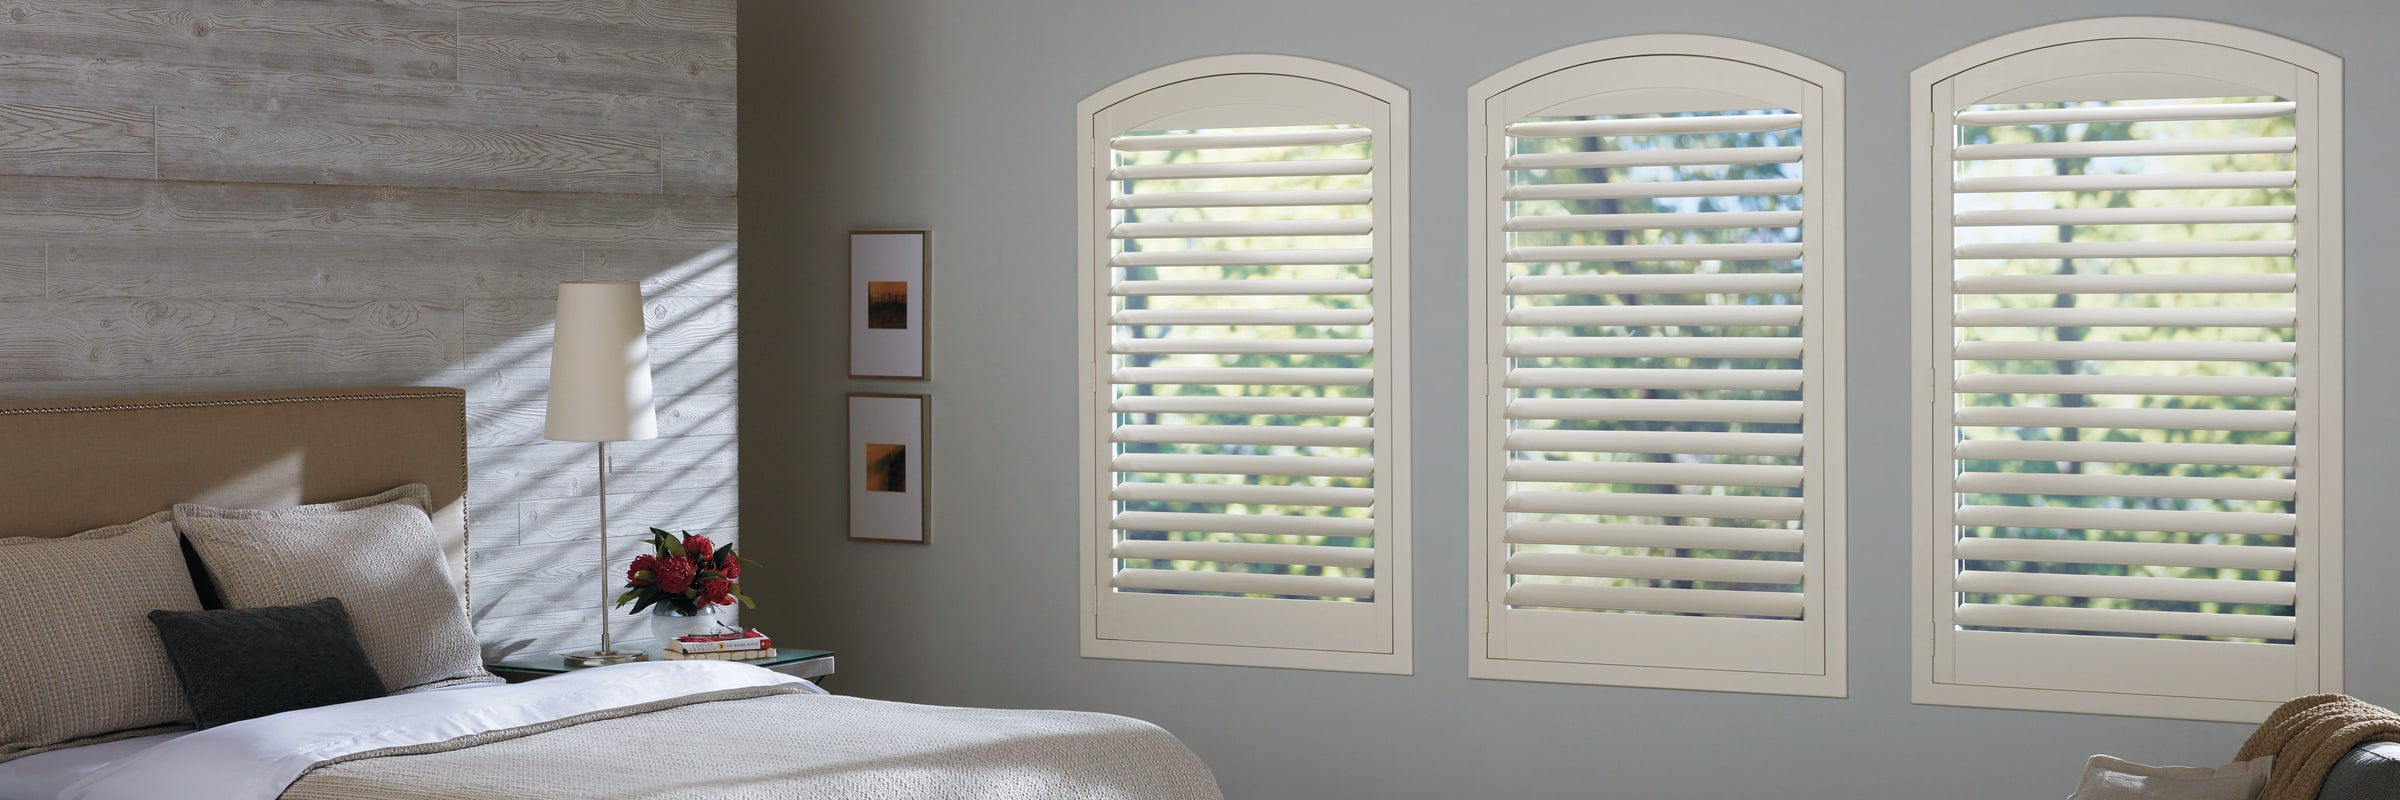 Custom shutters in Hybrid Swiss Cream - NewStyle